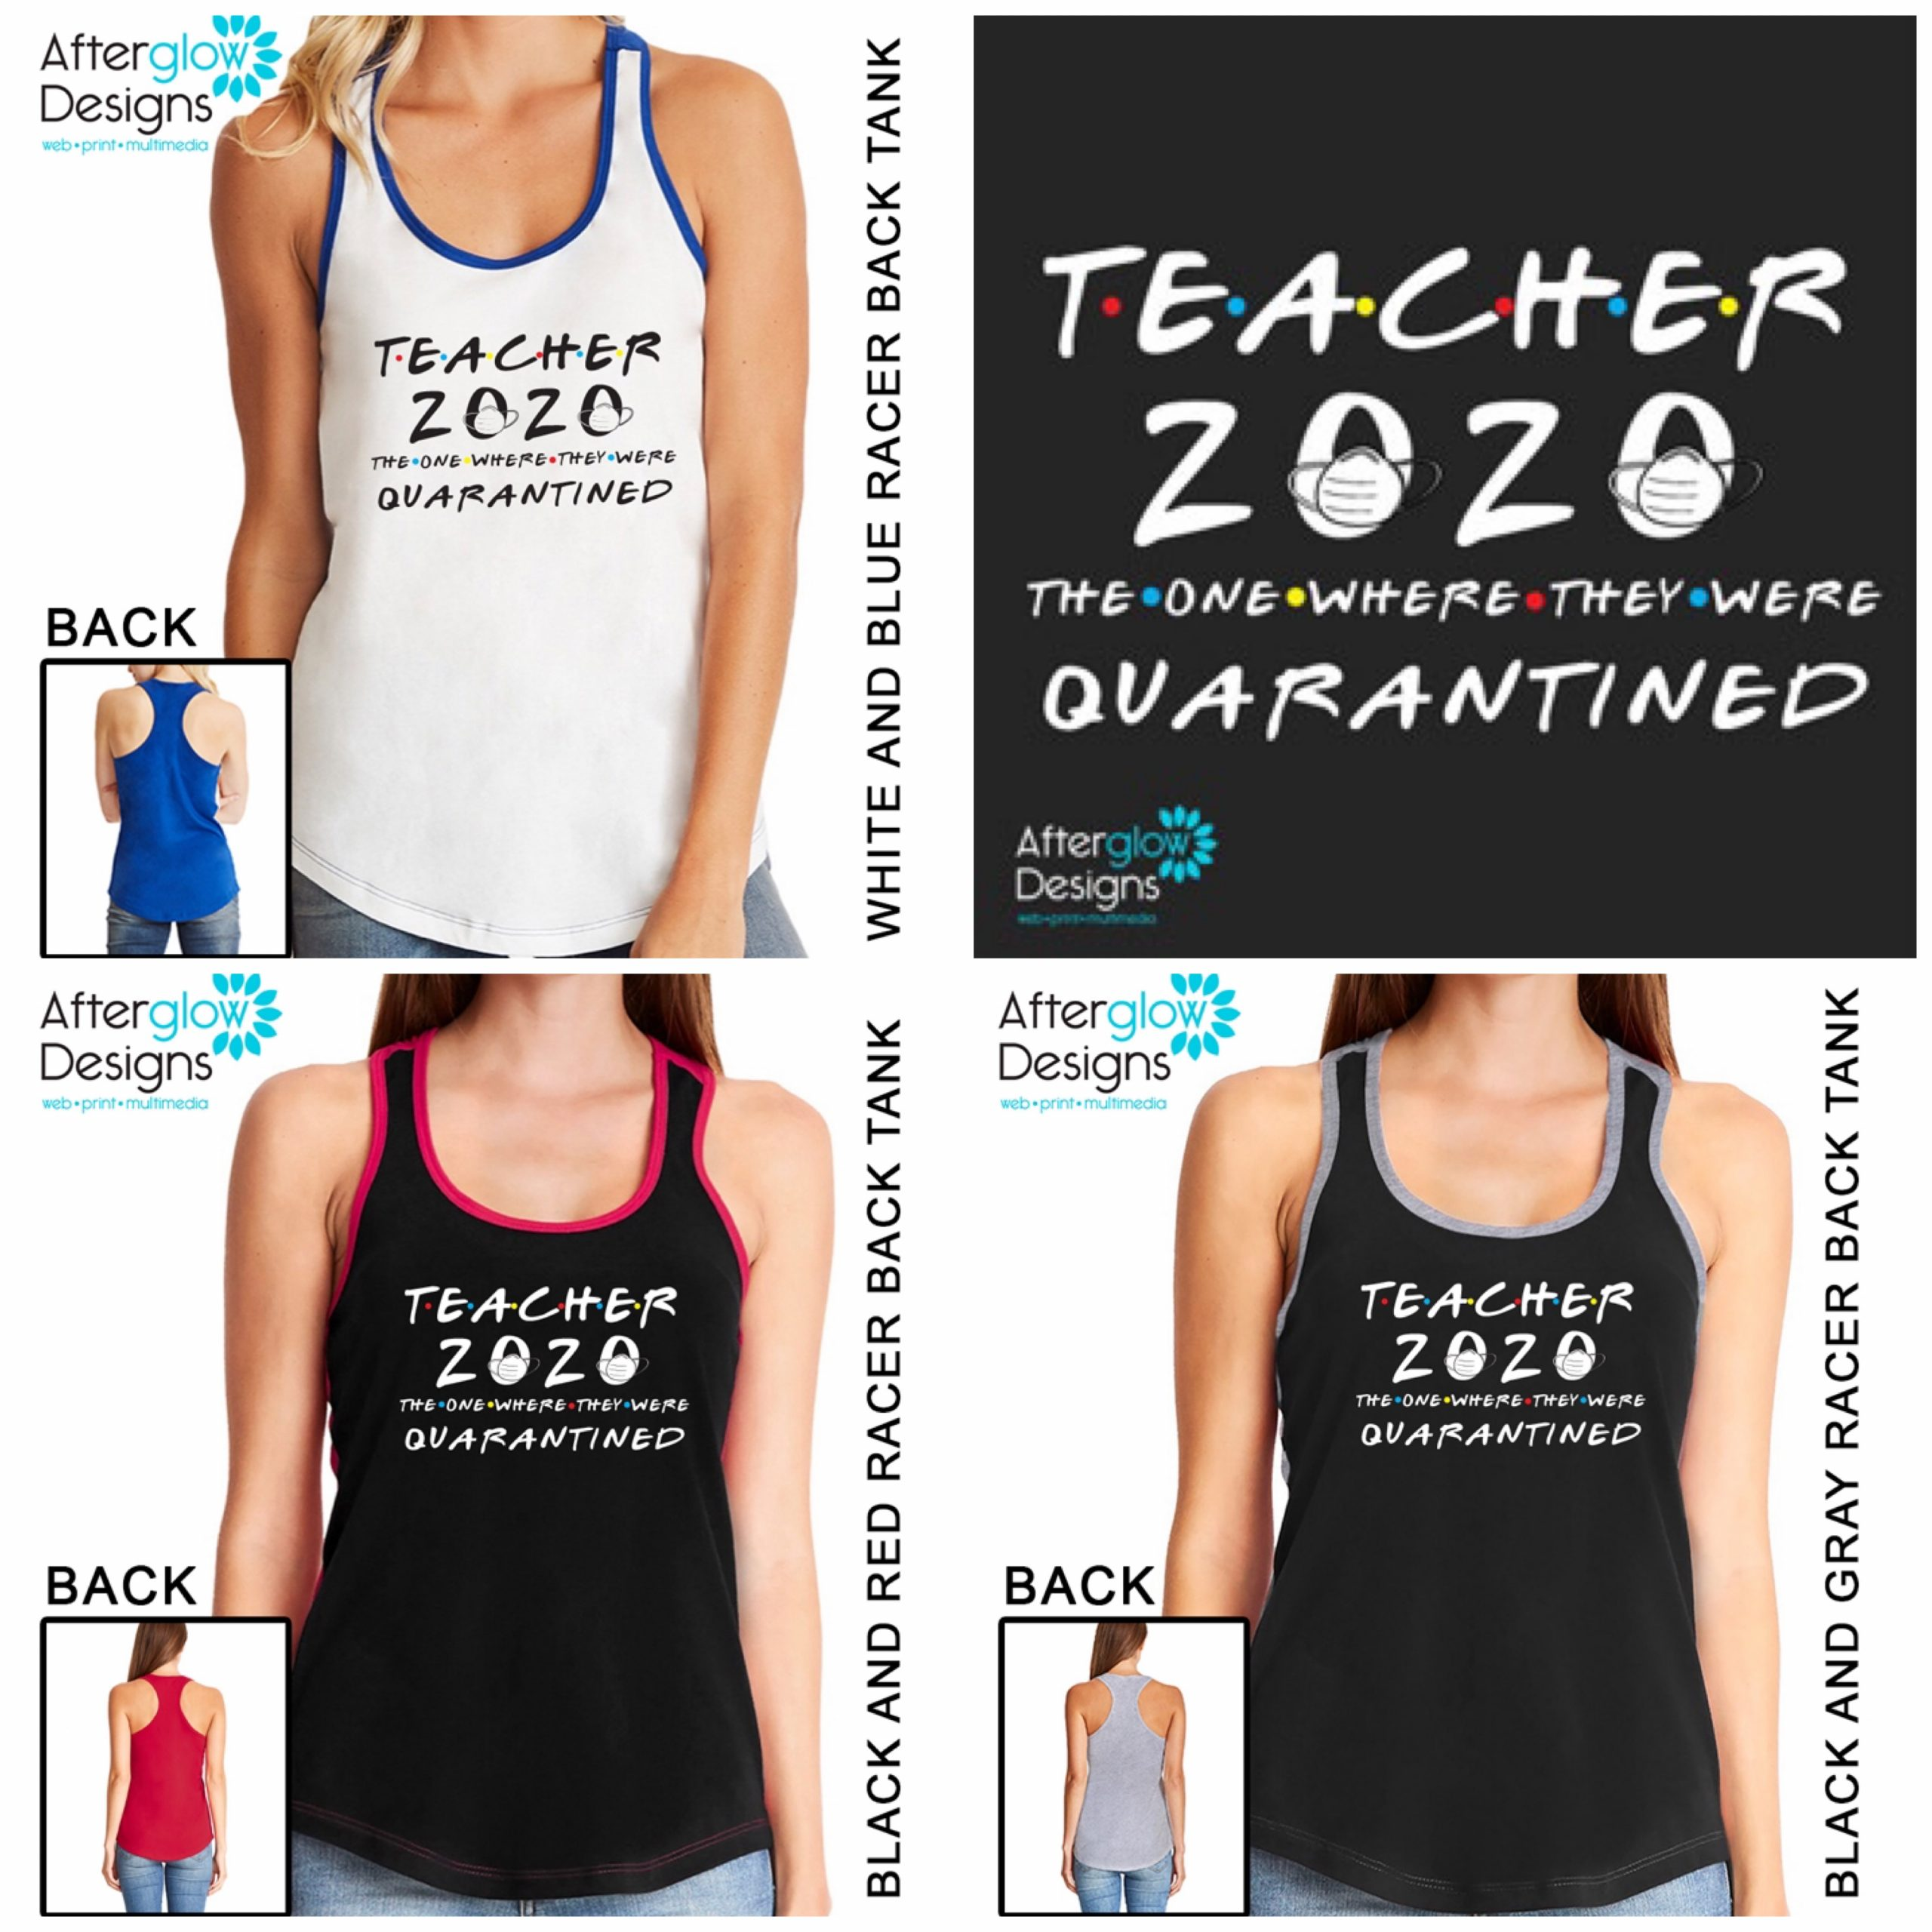 """""""Teacher 2020 - The One Where They Were Quarantined"""" Tanks"""